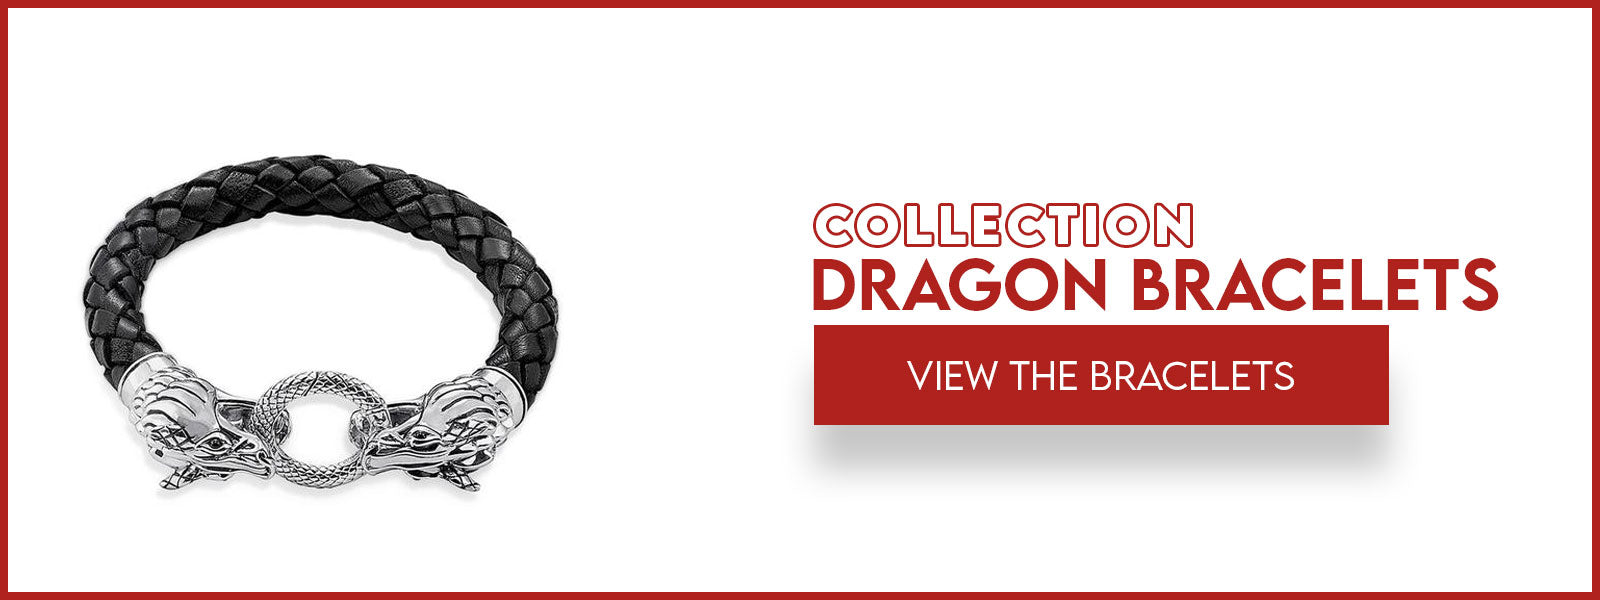 Collections Dragon Bracelets